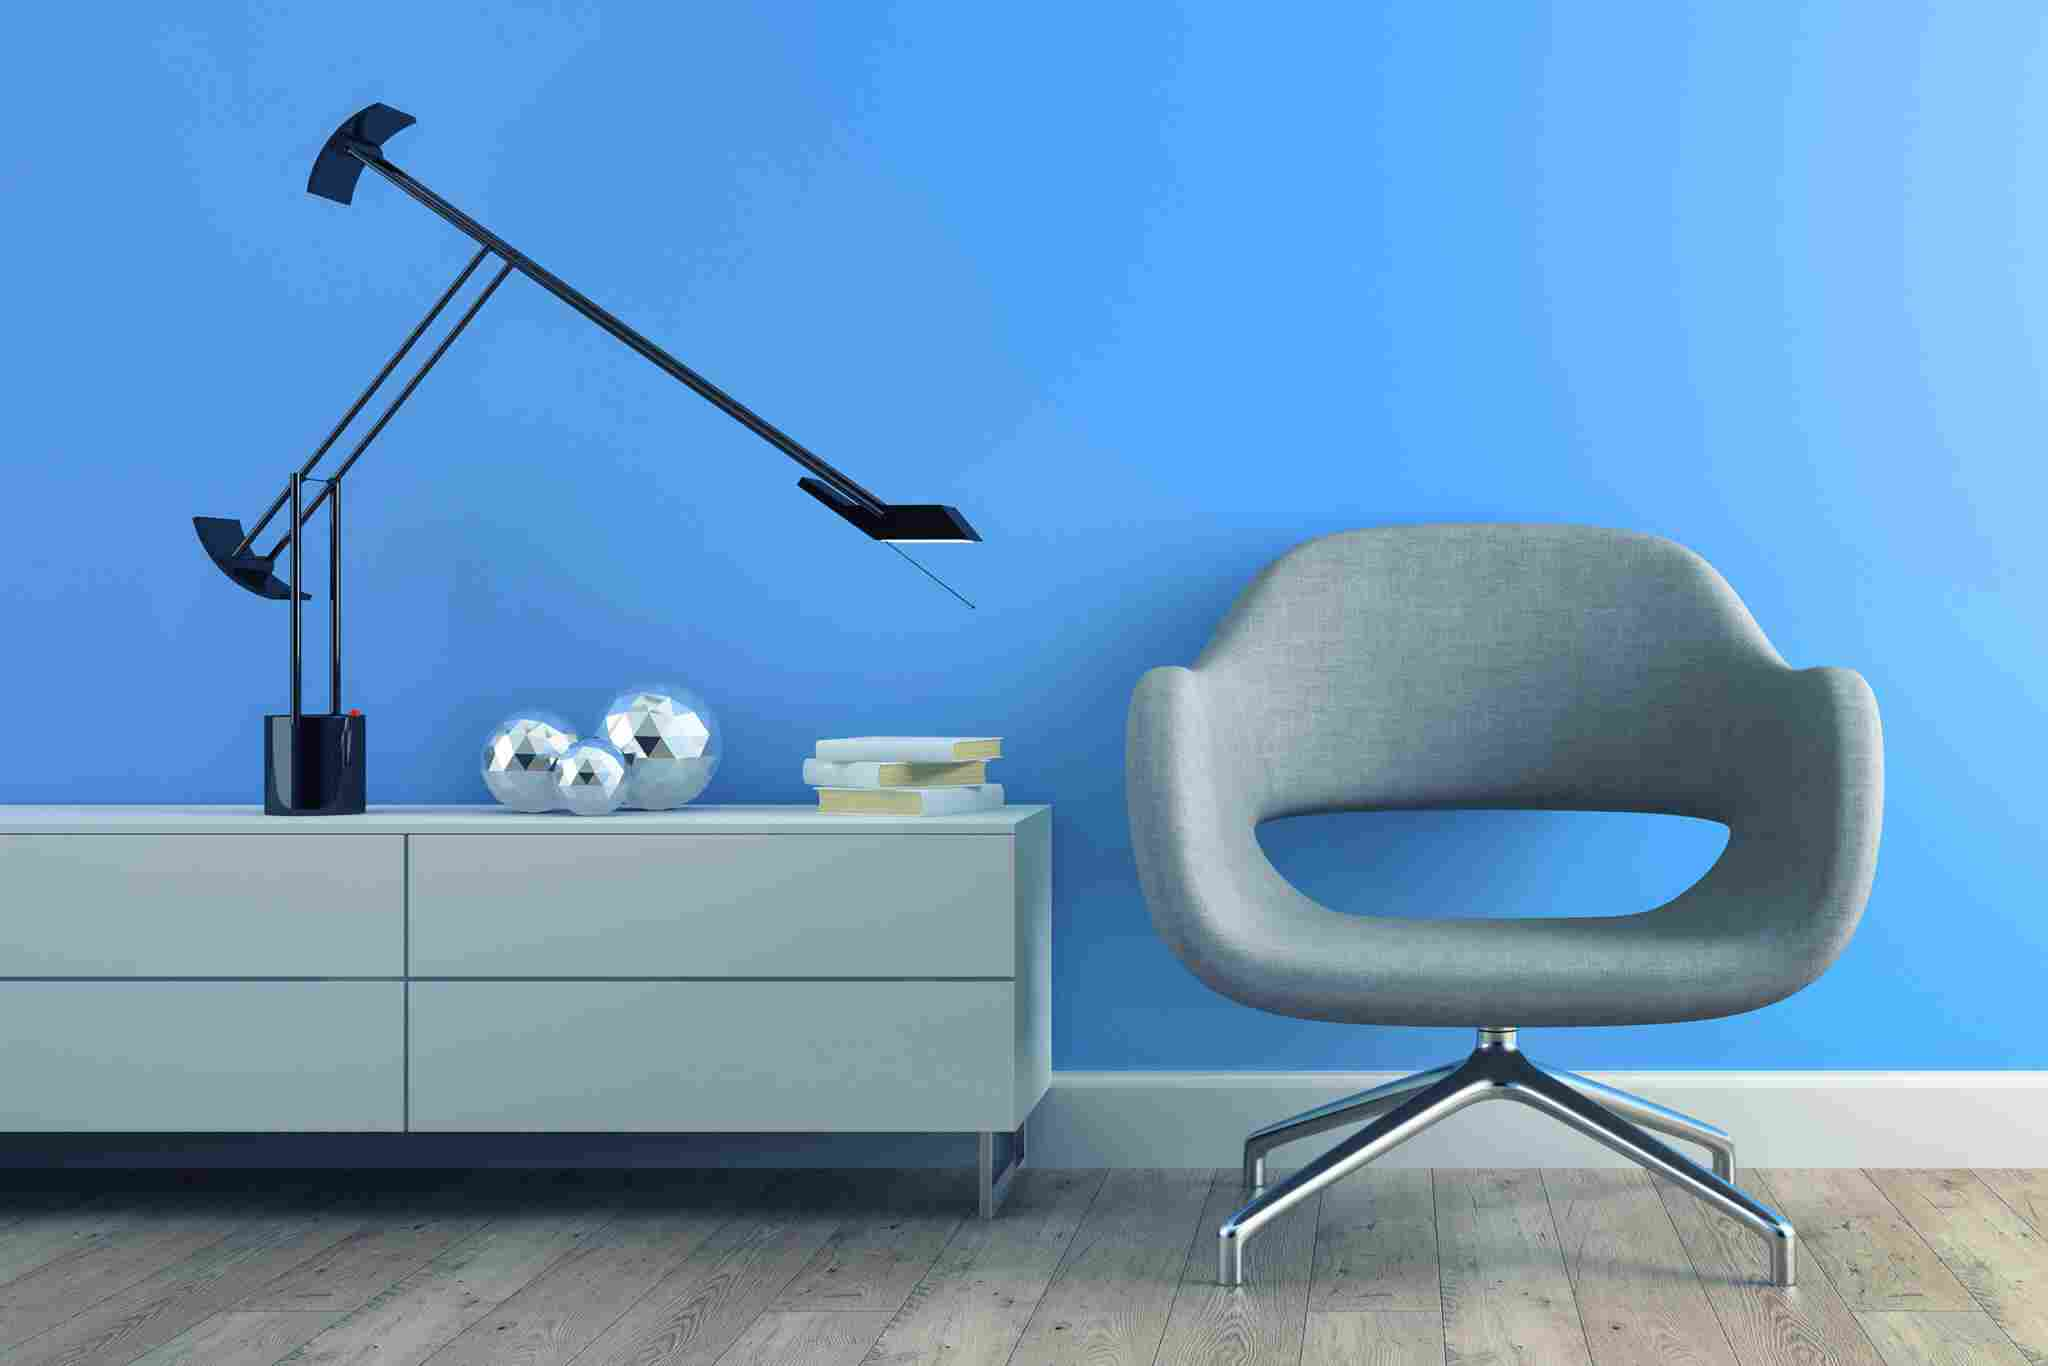 https://hautmadeiras.com.br/site/wp-content/uploads/2017/05/image-chair-blue-wall.jpg